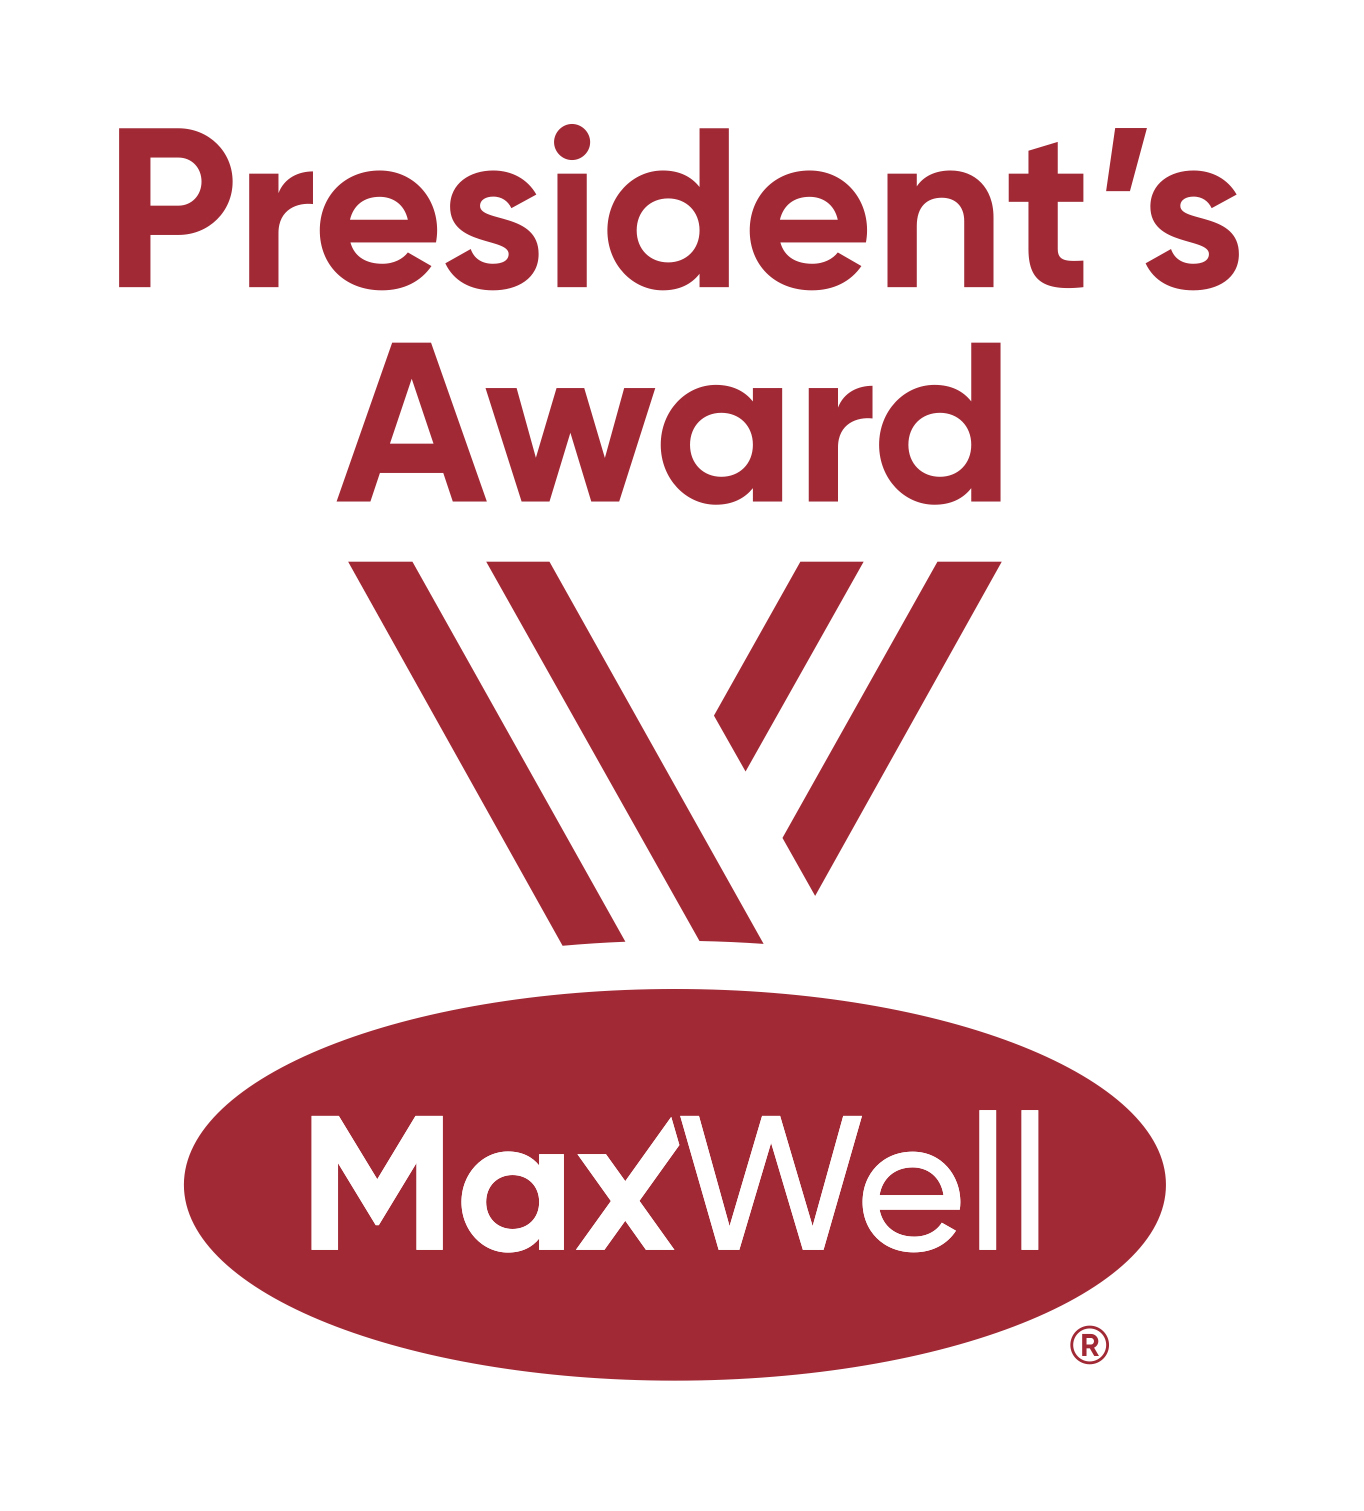 MaxWell Presidents Award.jpg